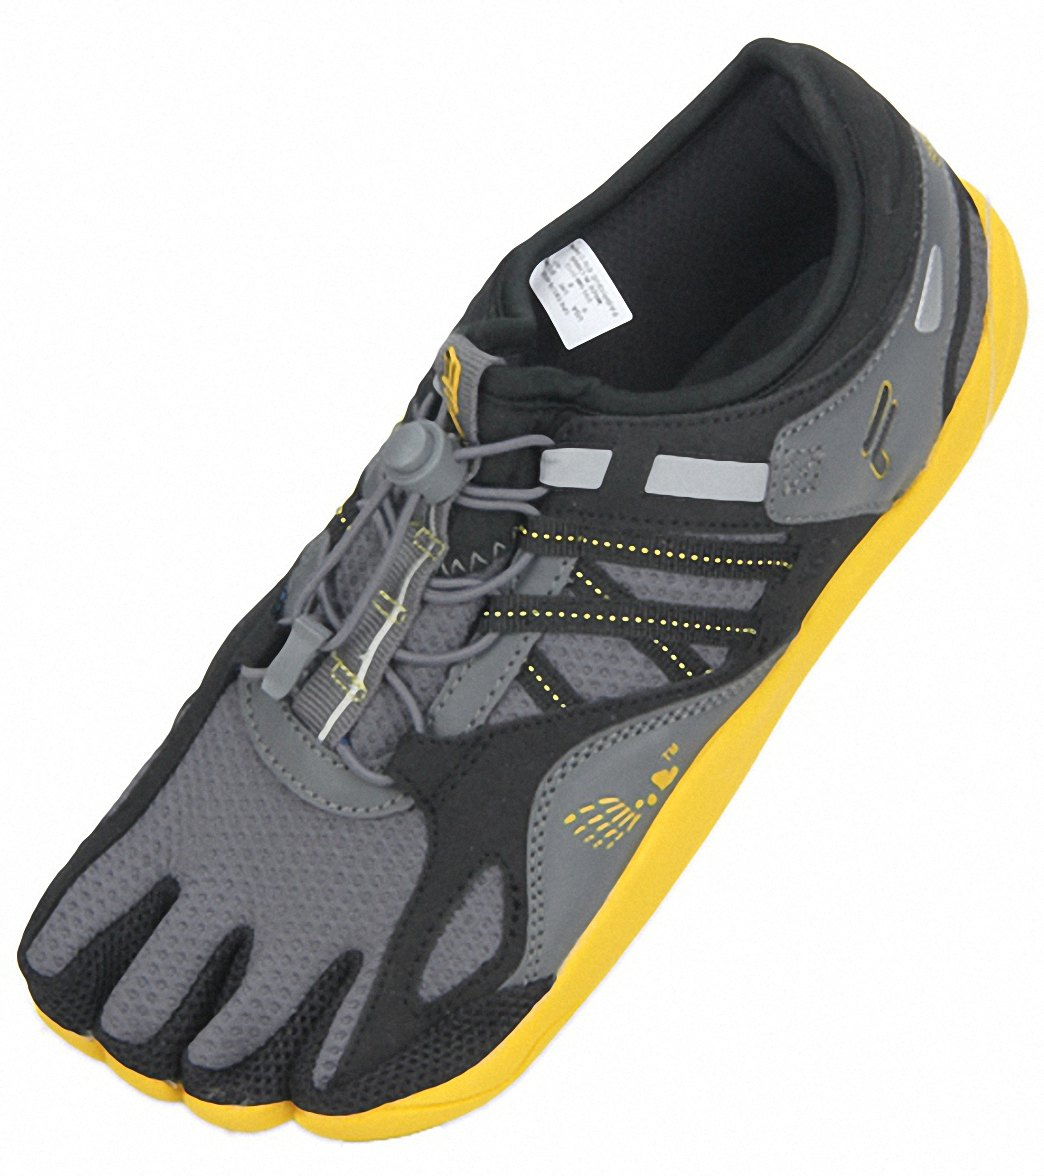 ef567607c5 Fila Men's Skele-Toes Bay Runner 3 Running Shoes at SwimOutlet.com - Free  Shipping